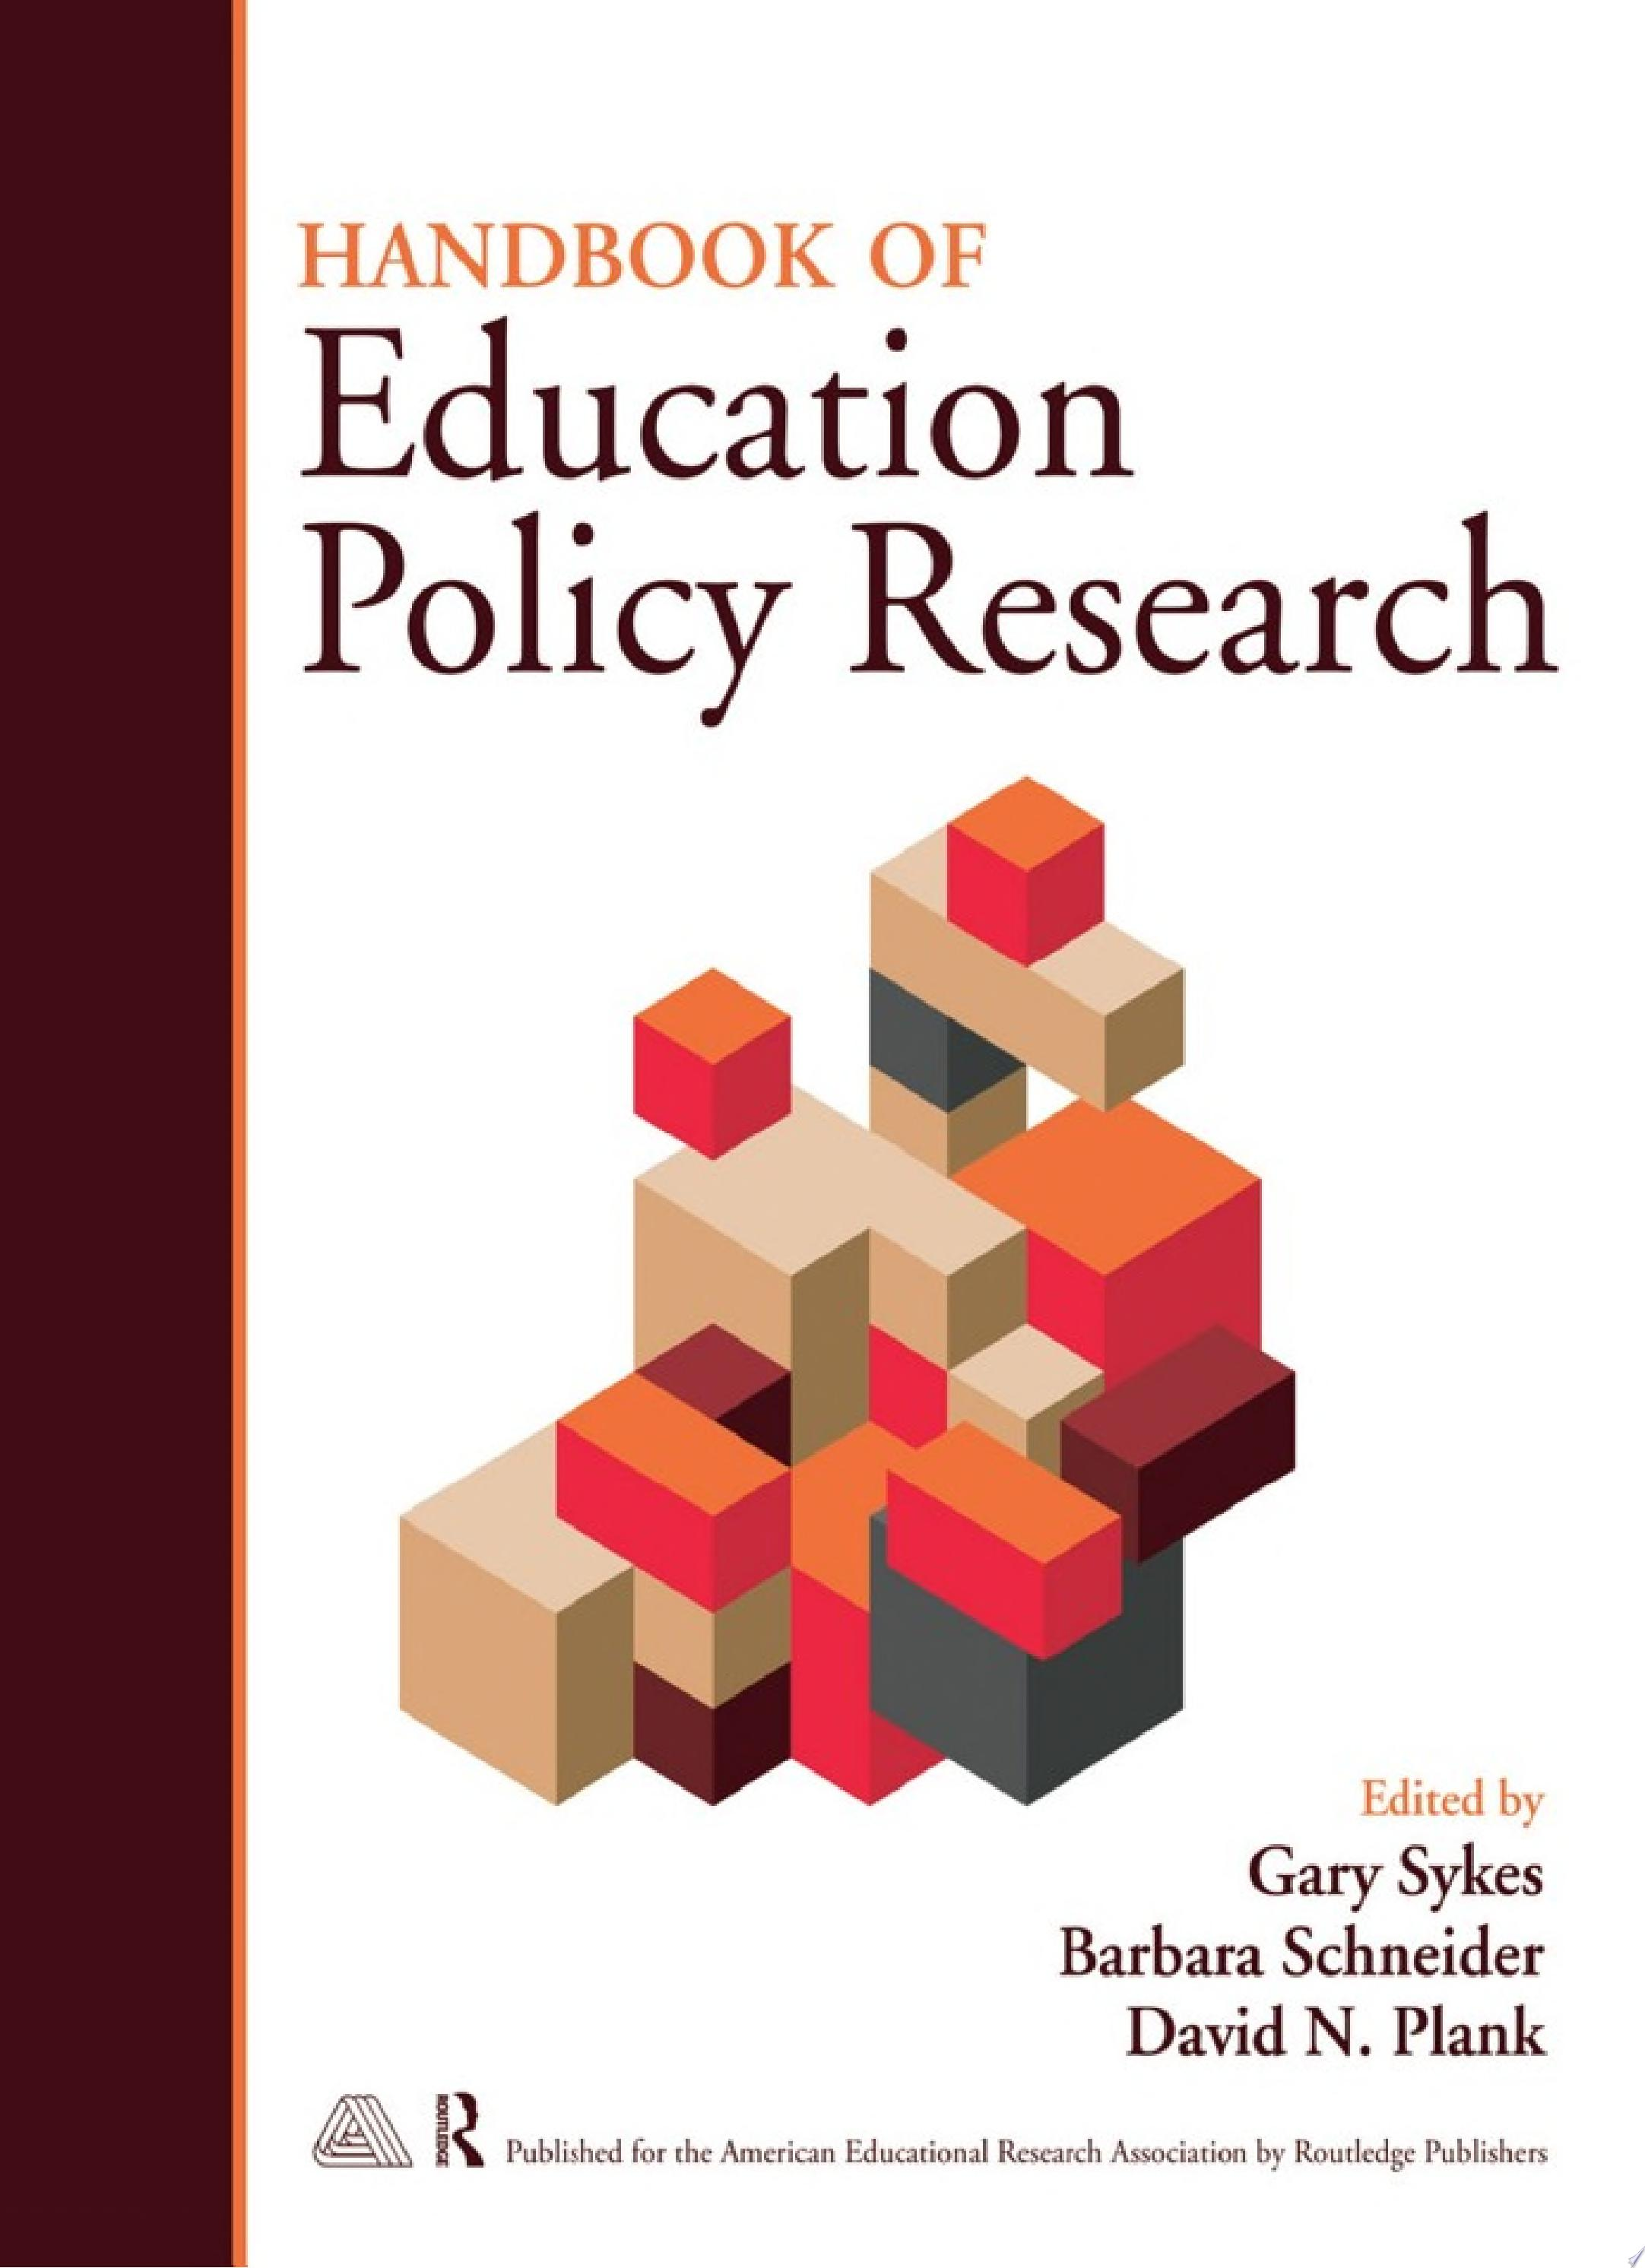 Handbook of Education Policy Research